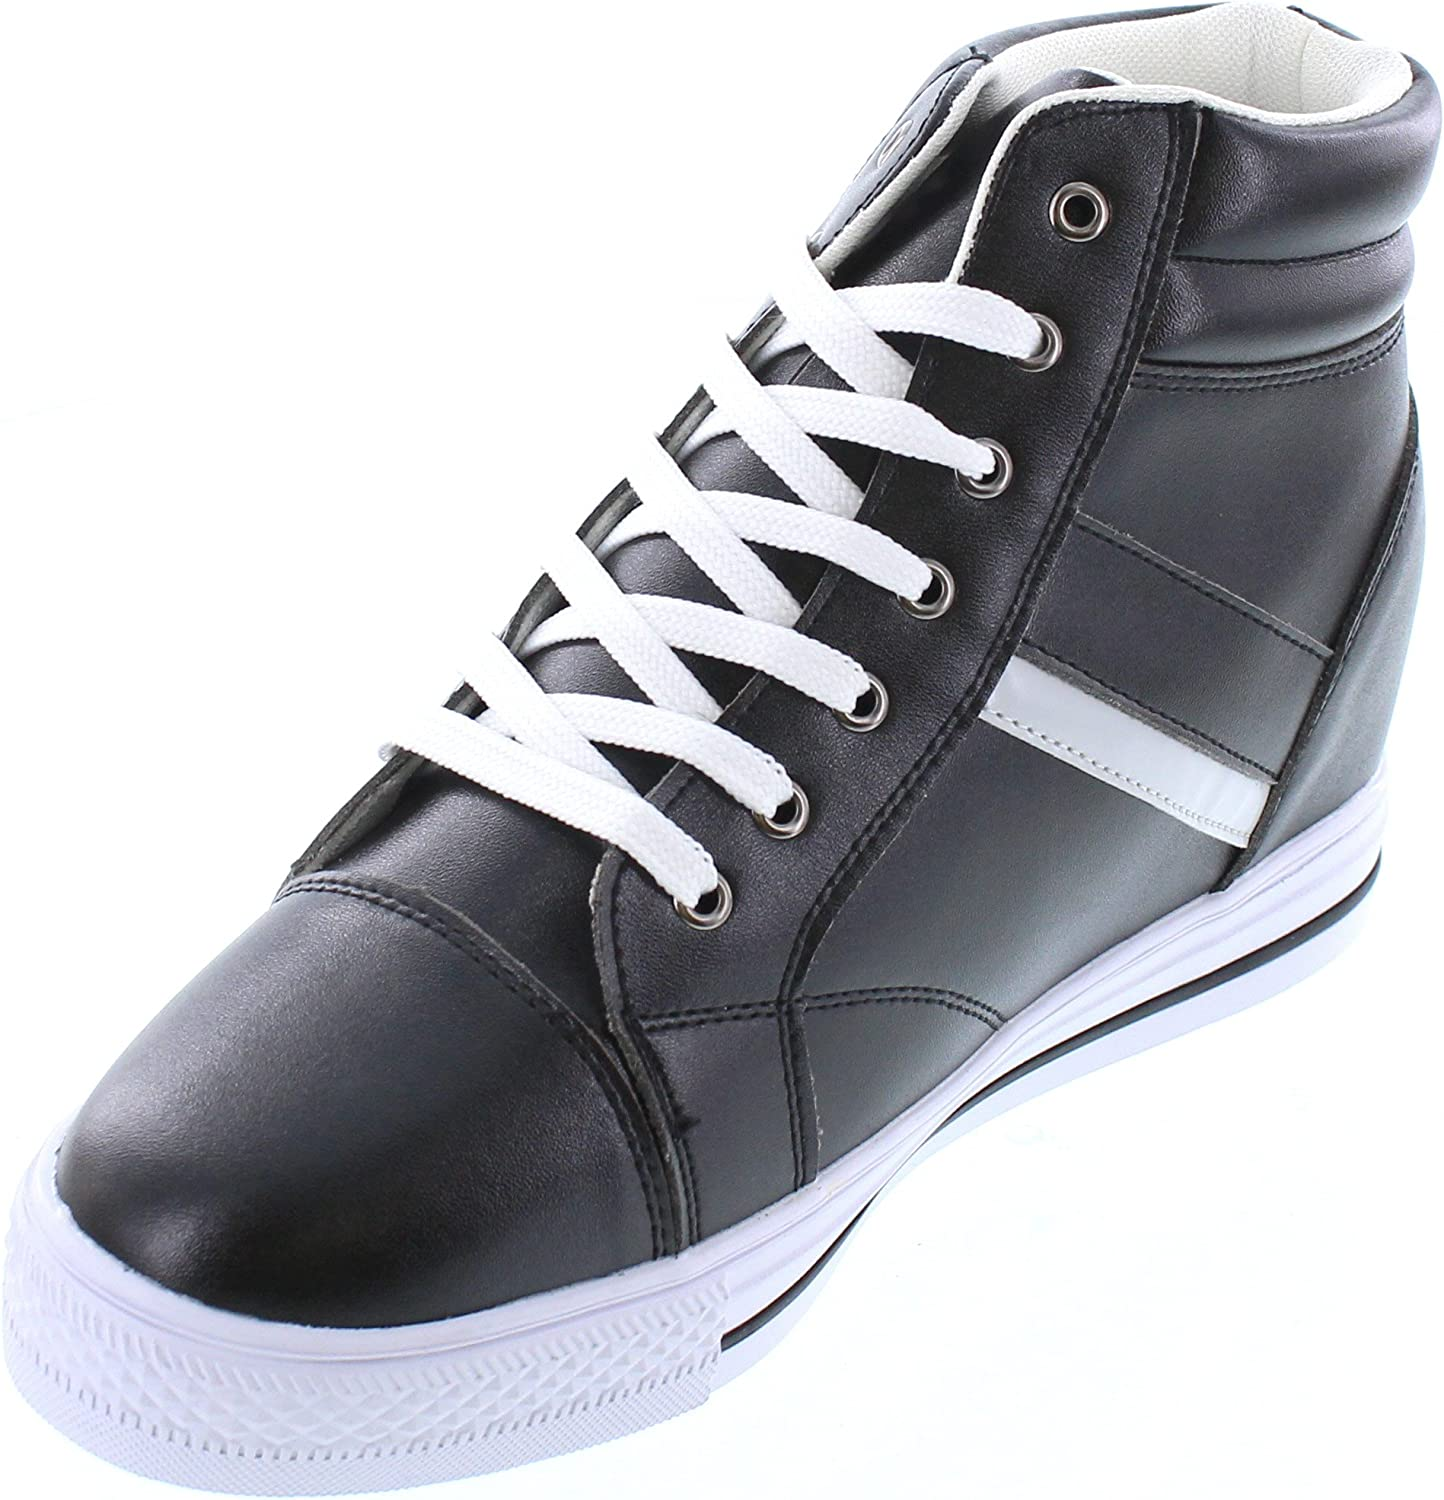 3 Inches Taller Calden Mens Invisible Height Increasing Elevator Shoes K107221 Black//White Leather Lace-up High-top Fashion Sneakers